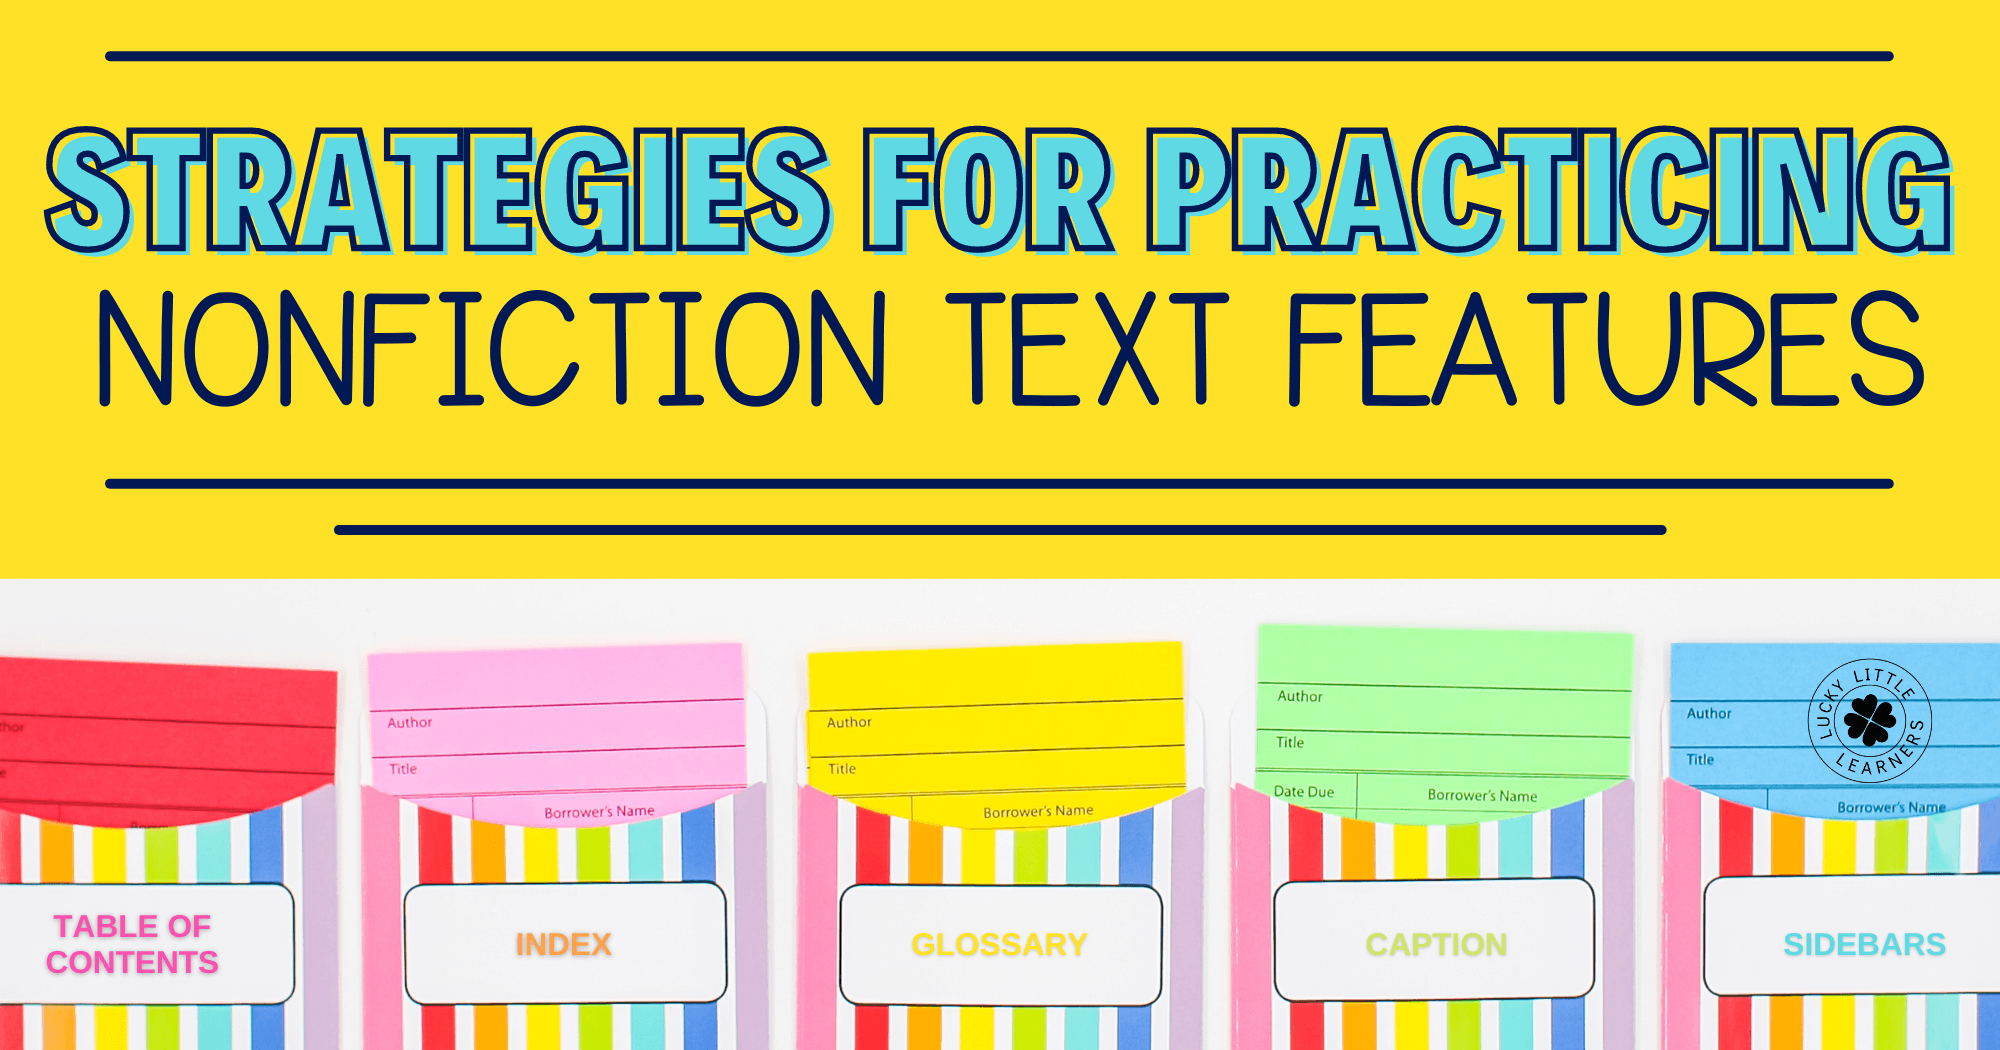 Strategies for Practicing Nonfiction Text Features